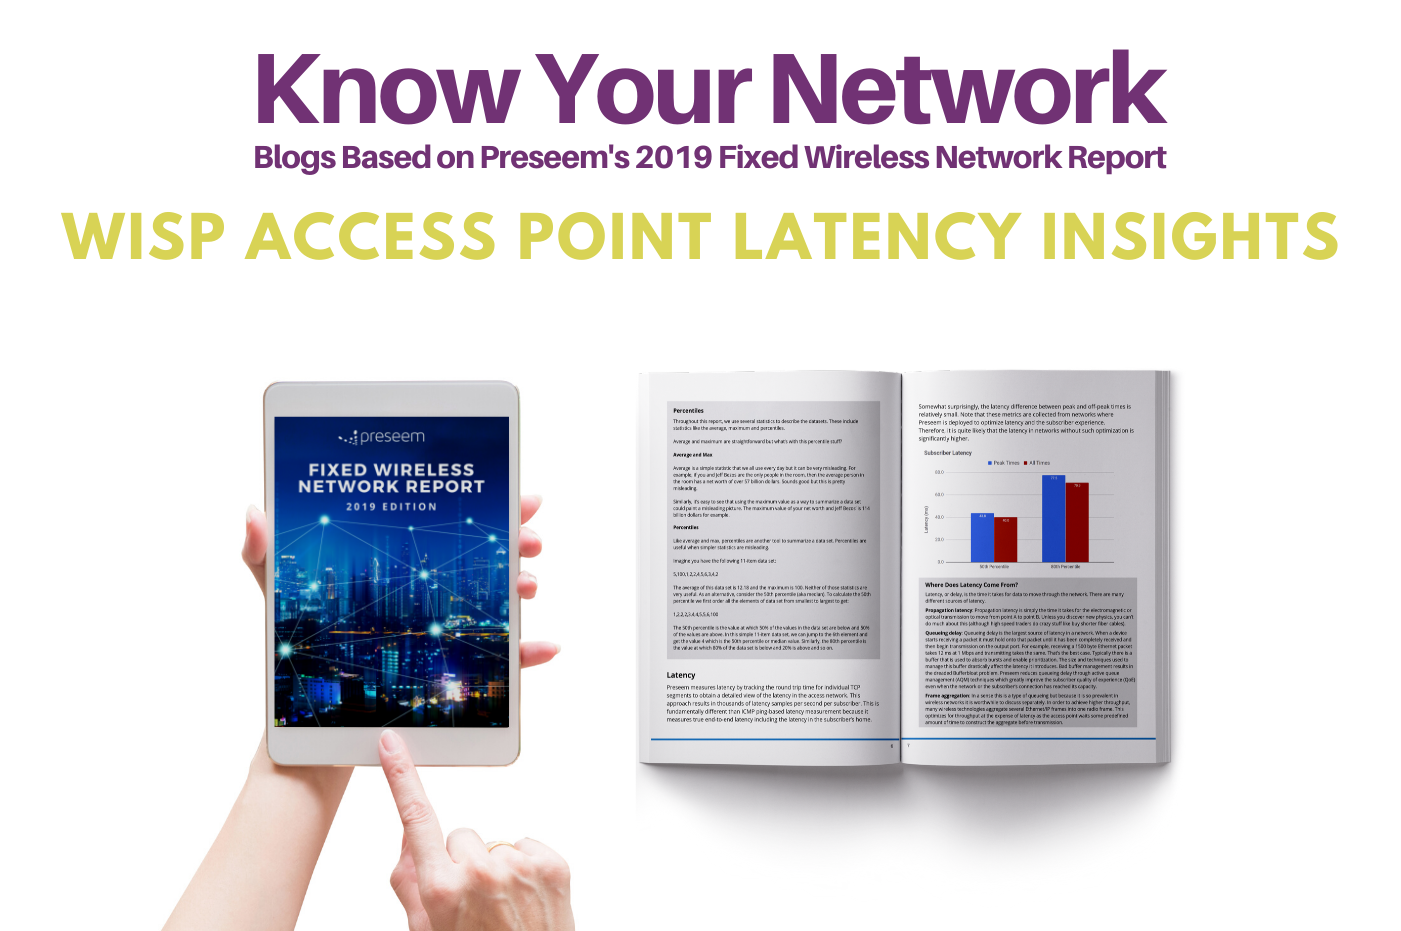 WISP Access Point Latency Insights